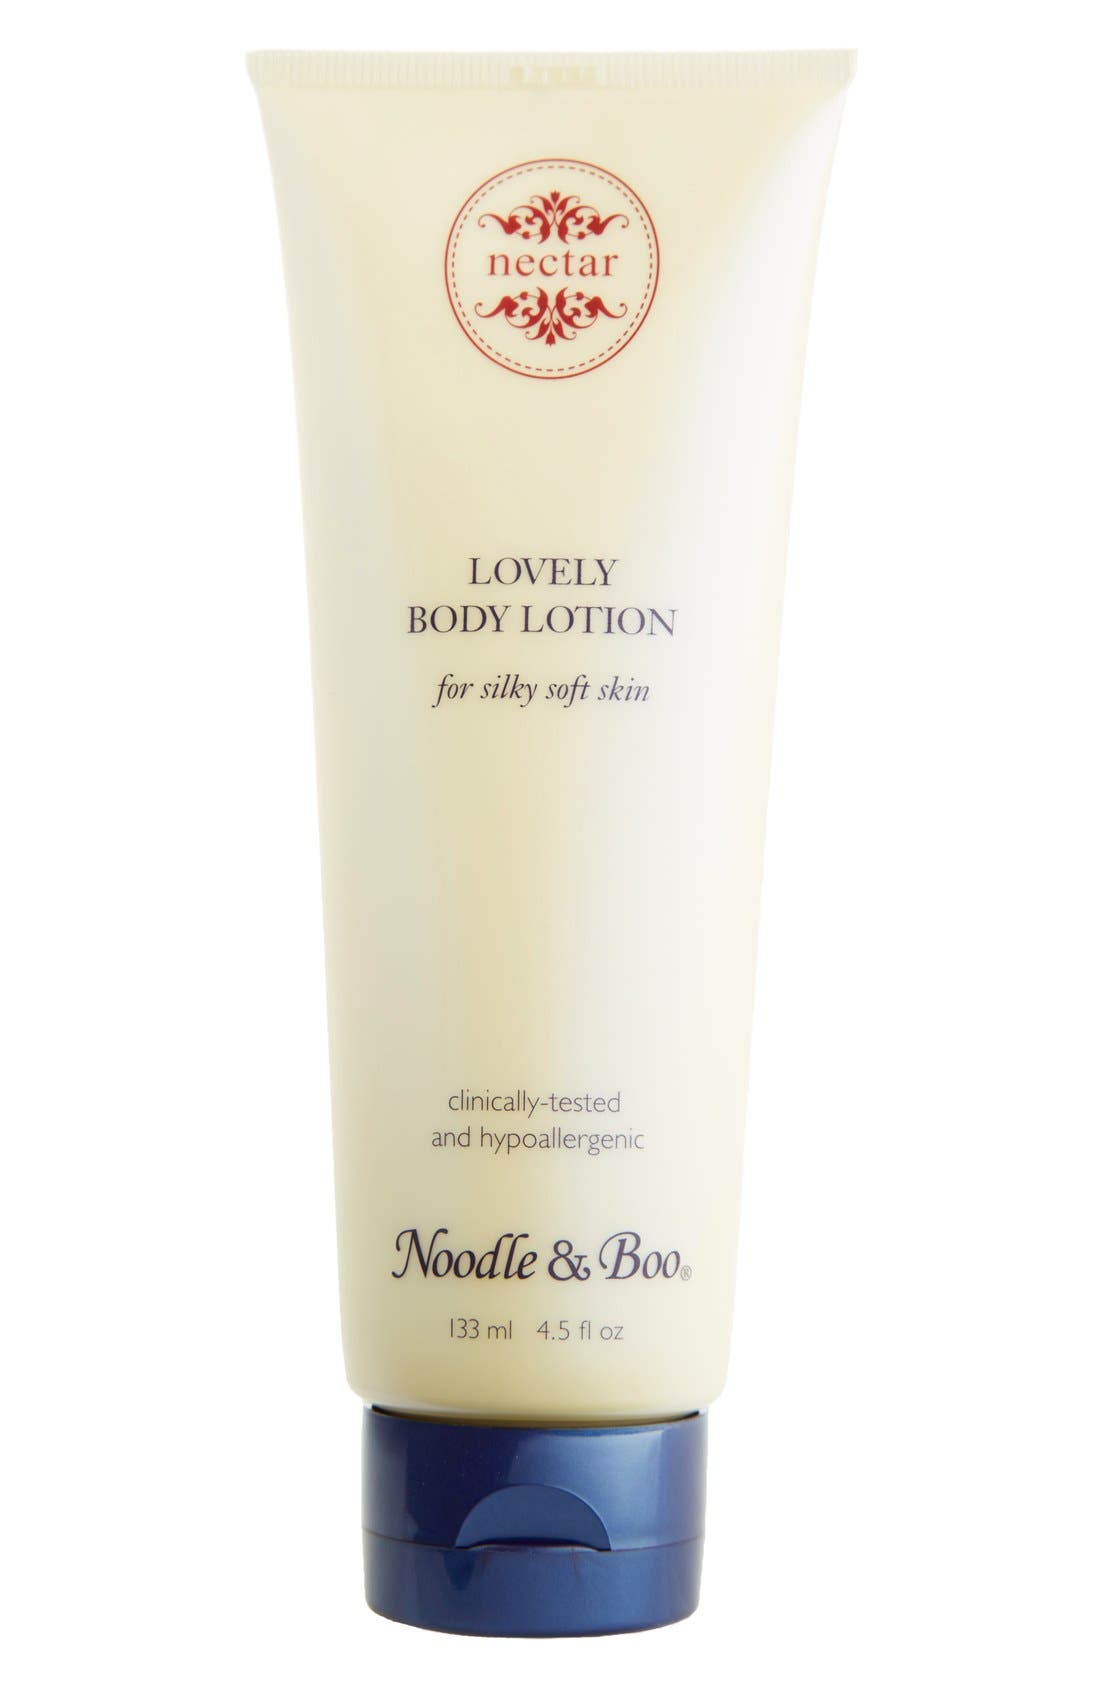 Noodle & Boo nectar - Lovely Body Lotion